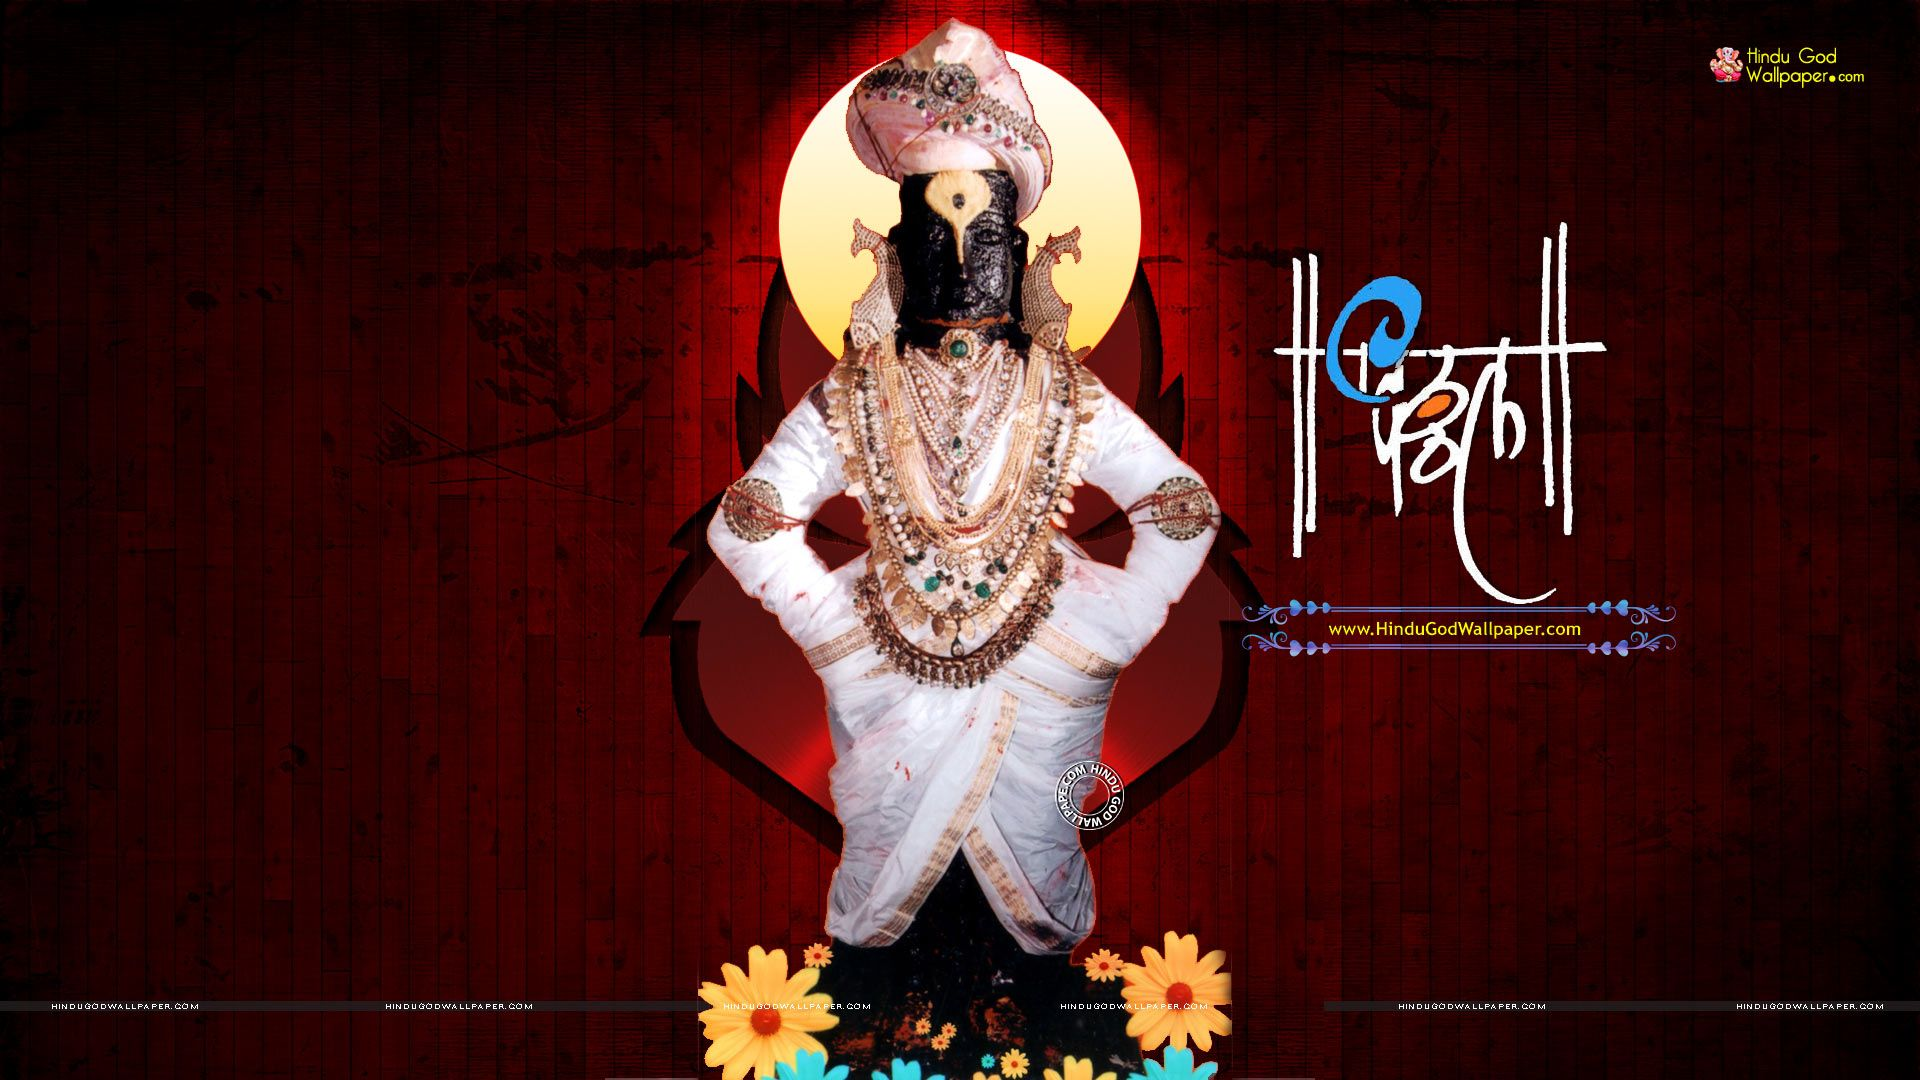 Lord Vitthal Hd Wallpaper Photos Full Size Free Download My Board